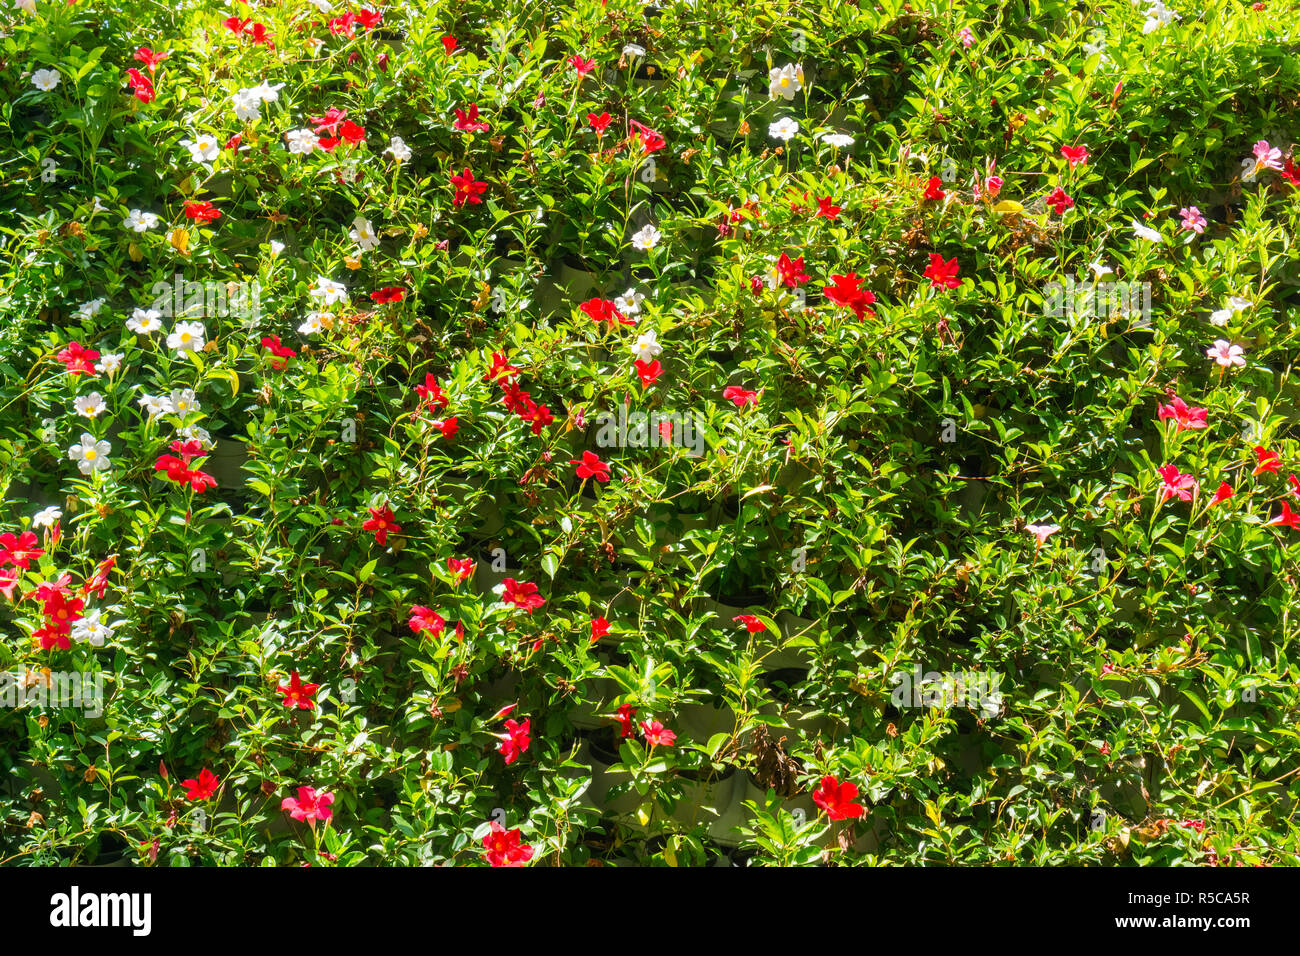 Wall Decorated With Red Flowers Eco Friendly Vertical Garden With